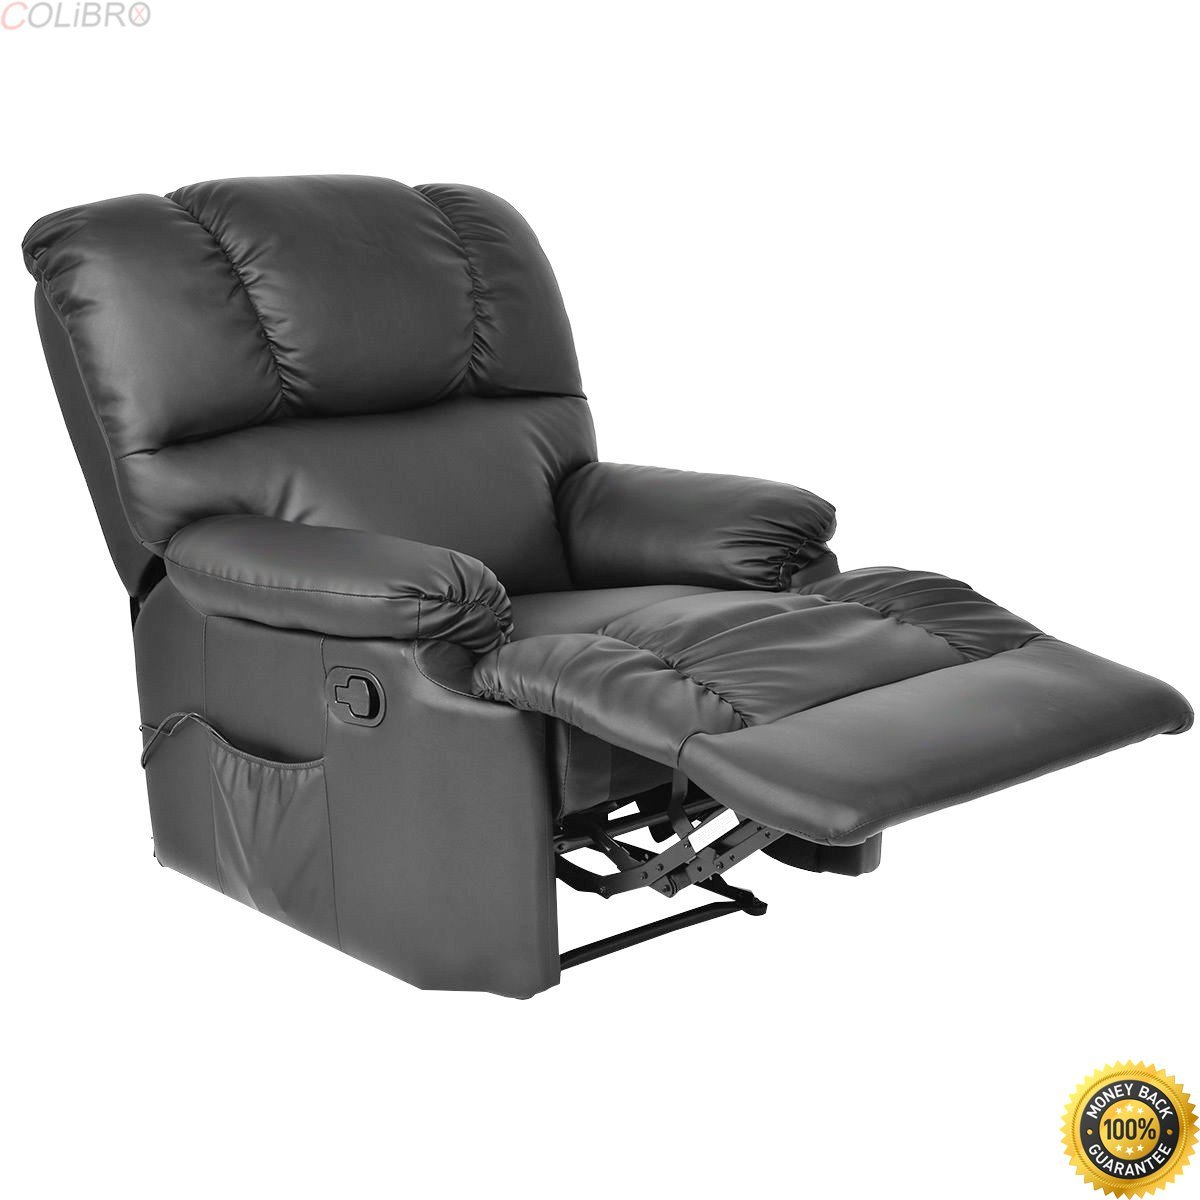 Colibrox Recliner Mage Sofa Chair Deluxe Ergonomic Lounge Couch Heated W Control Black